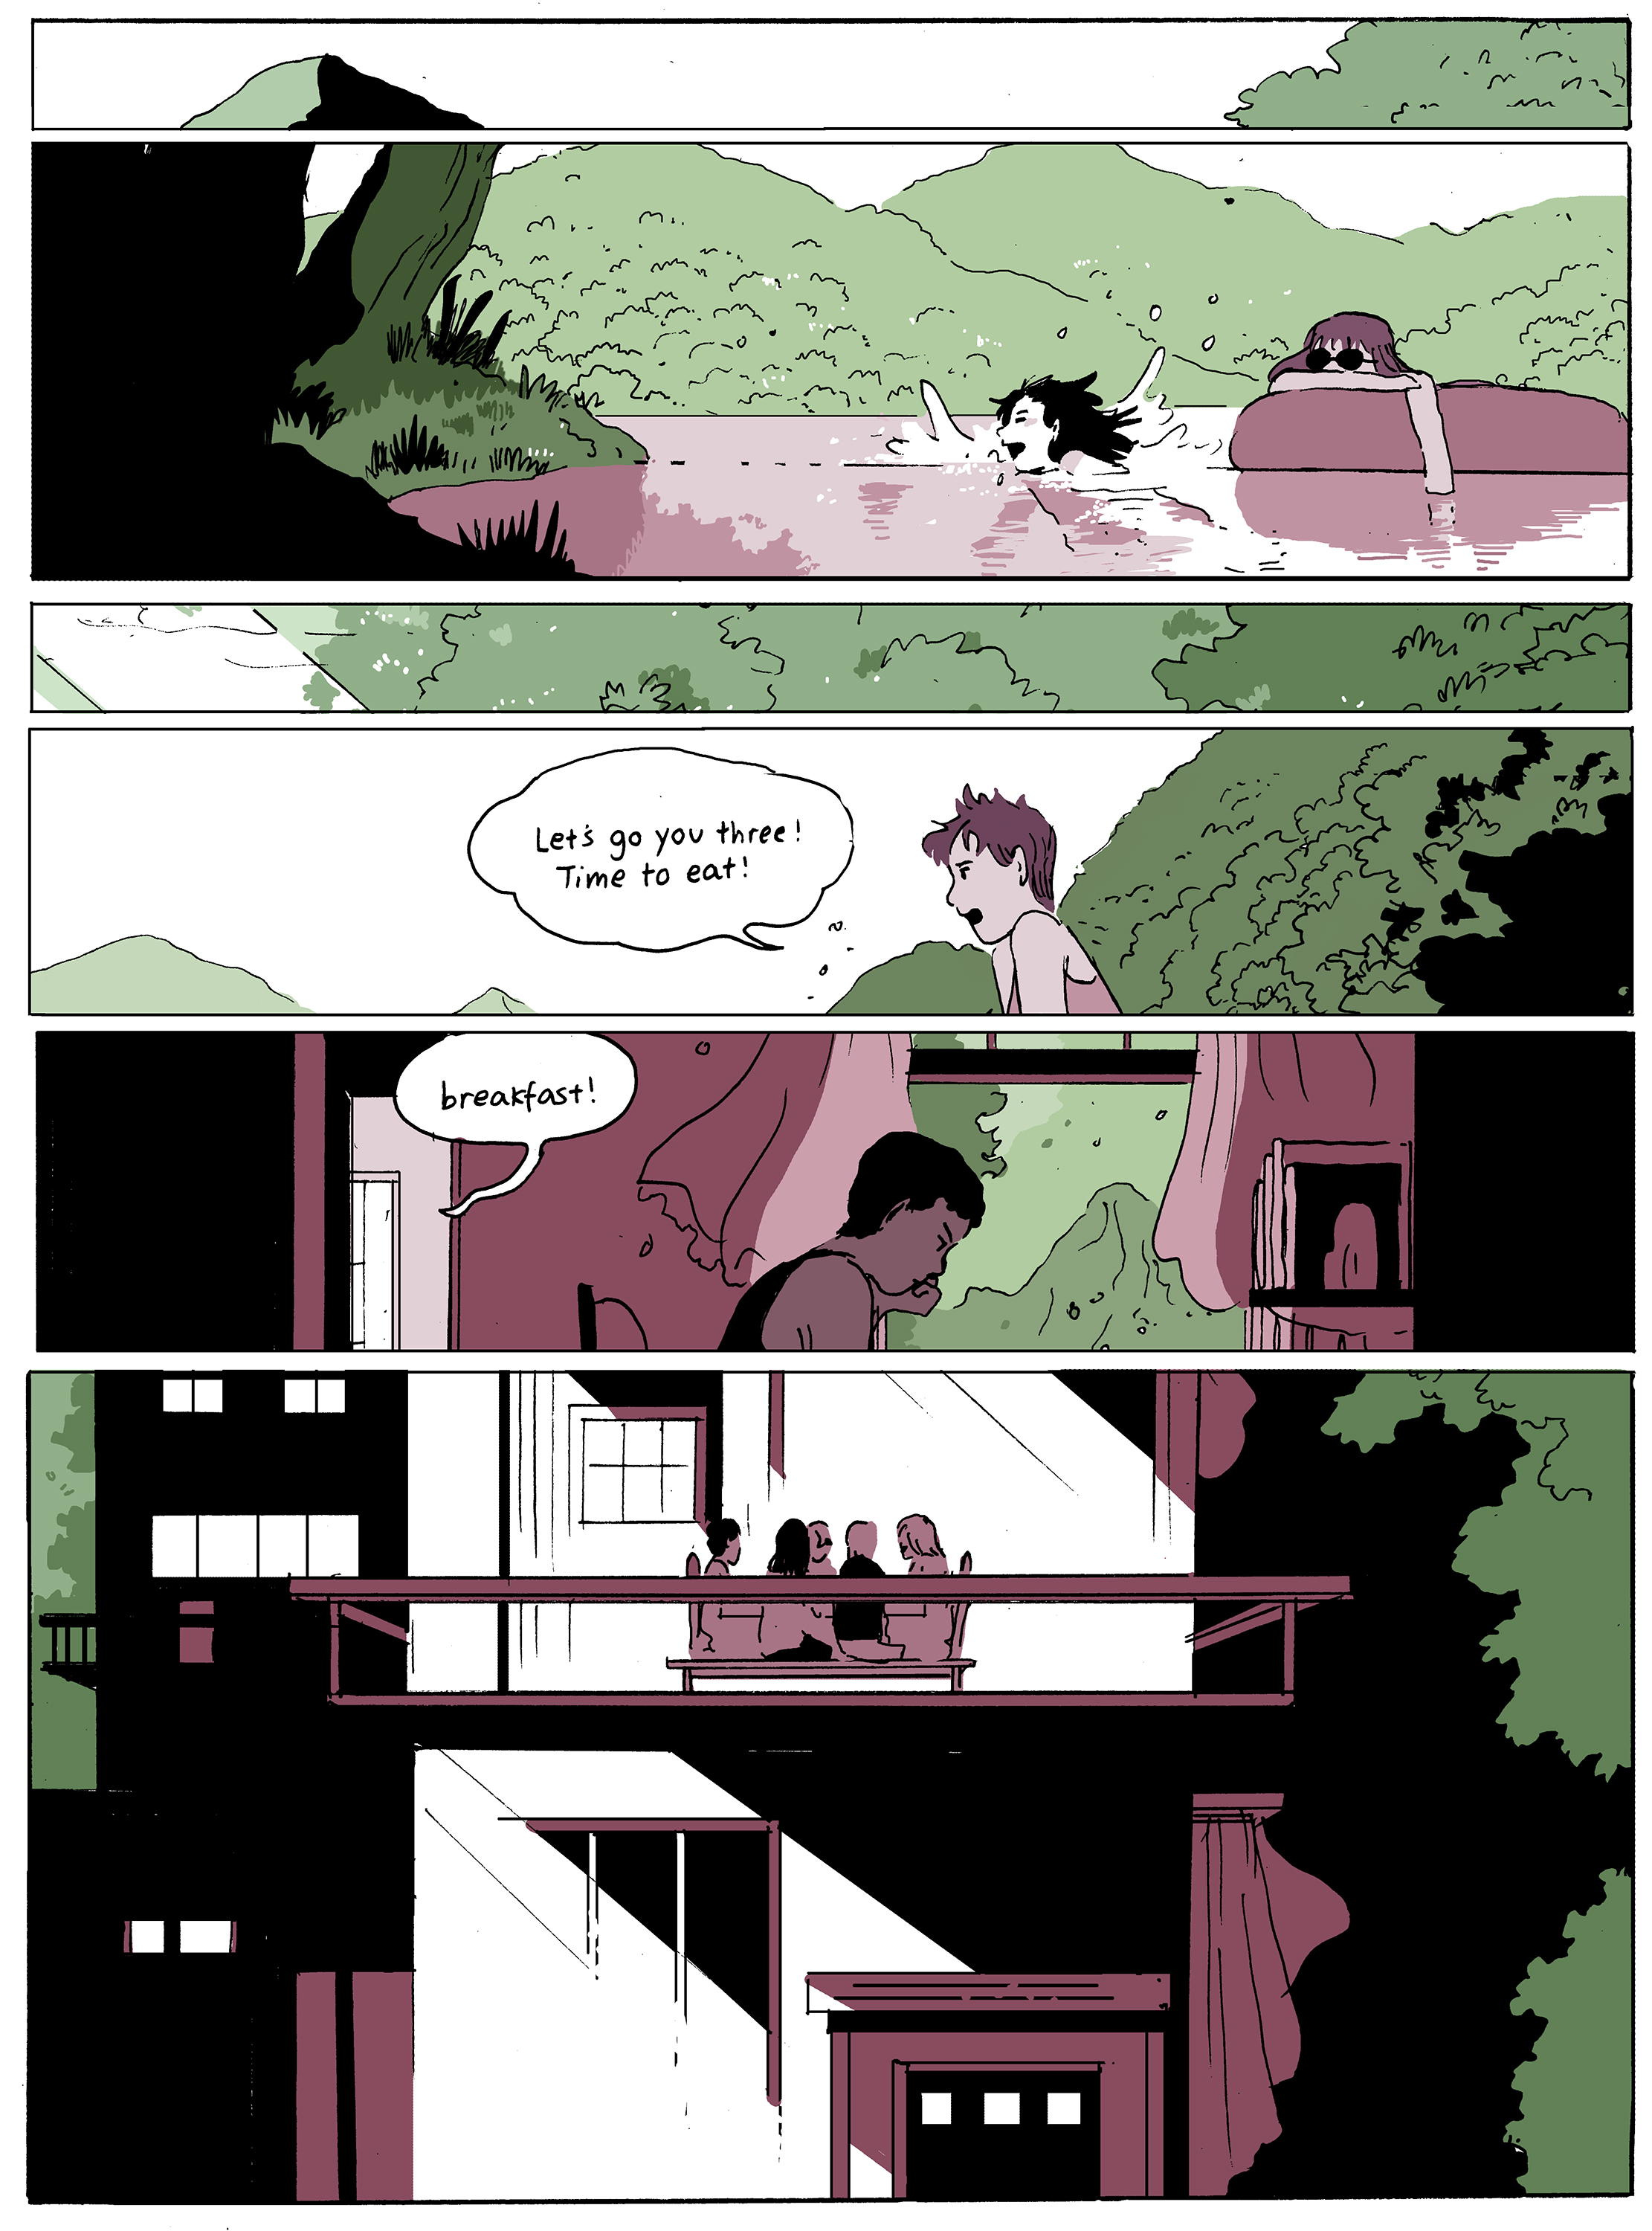 chapter14_page02.jpg